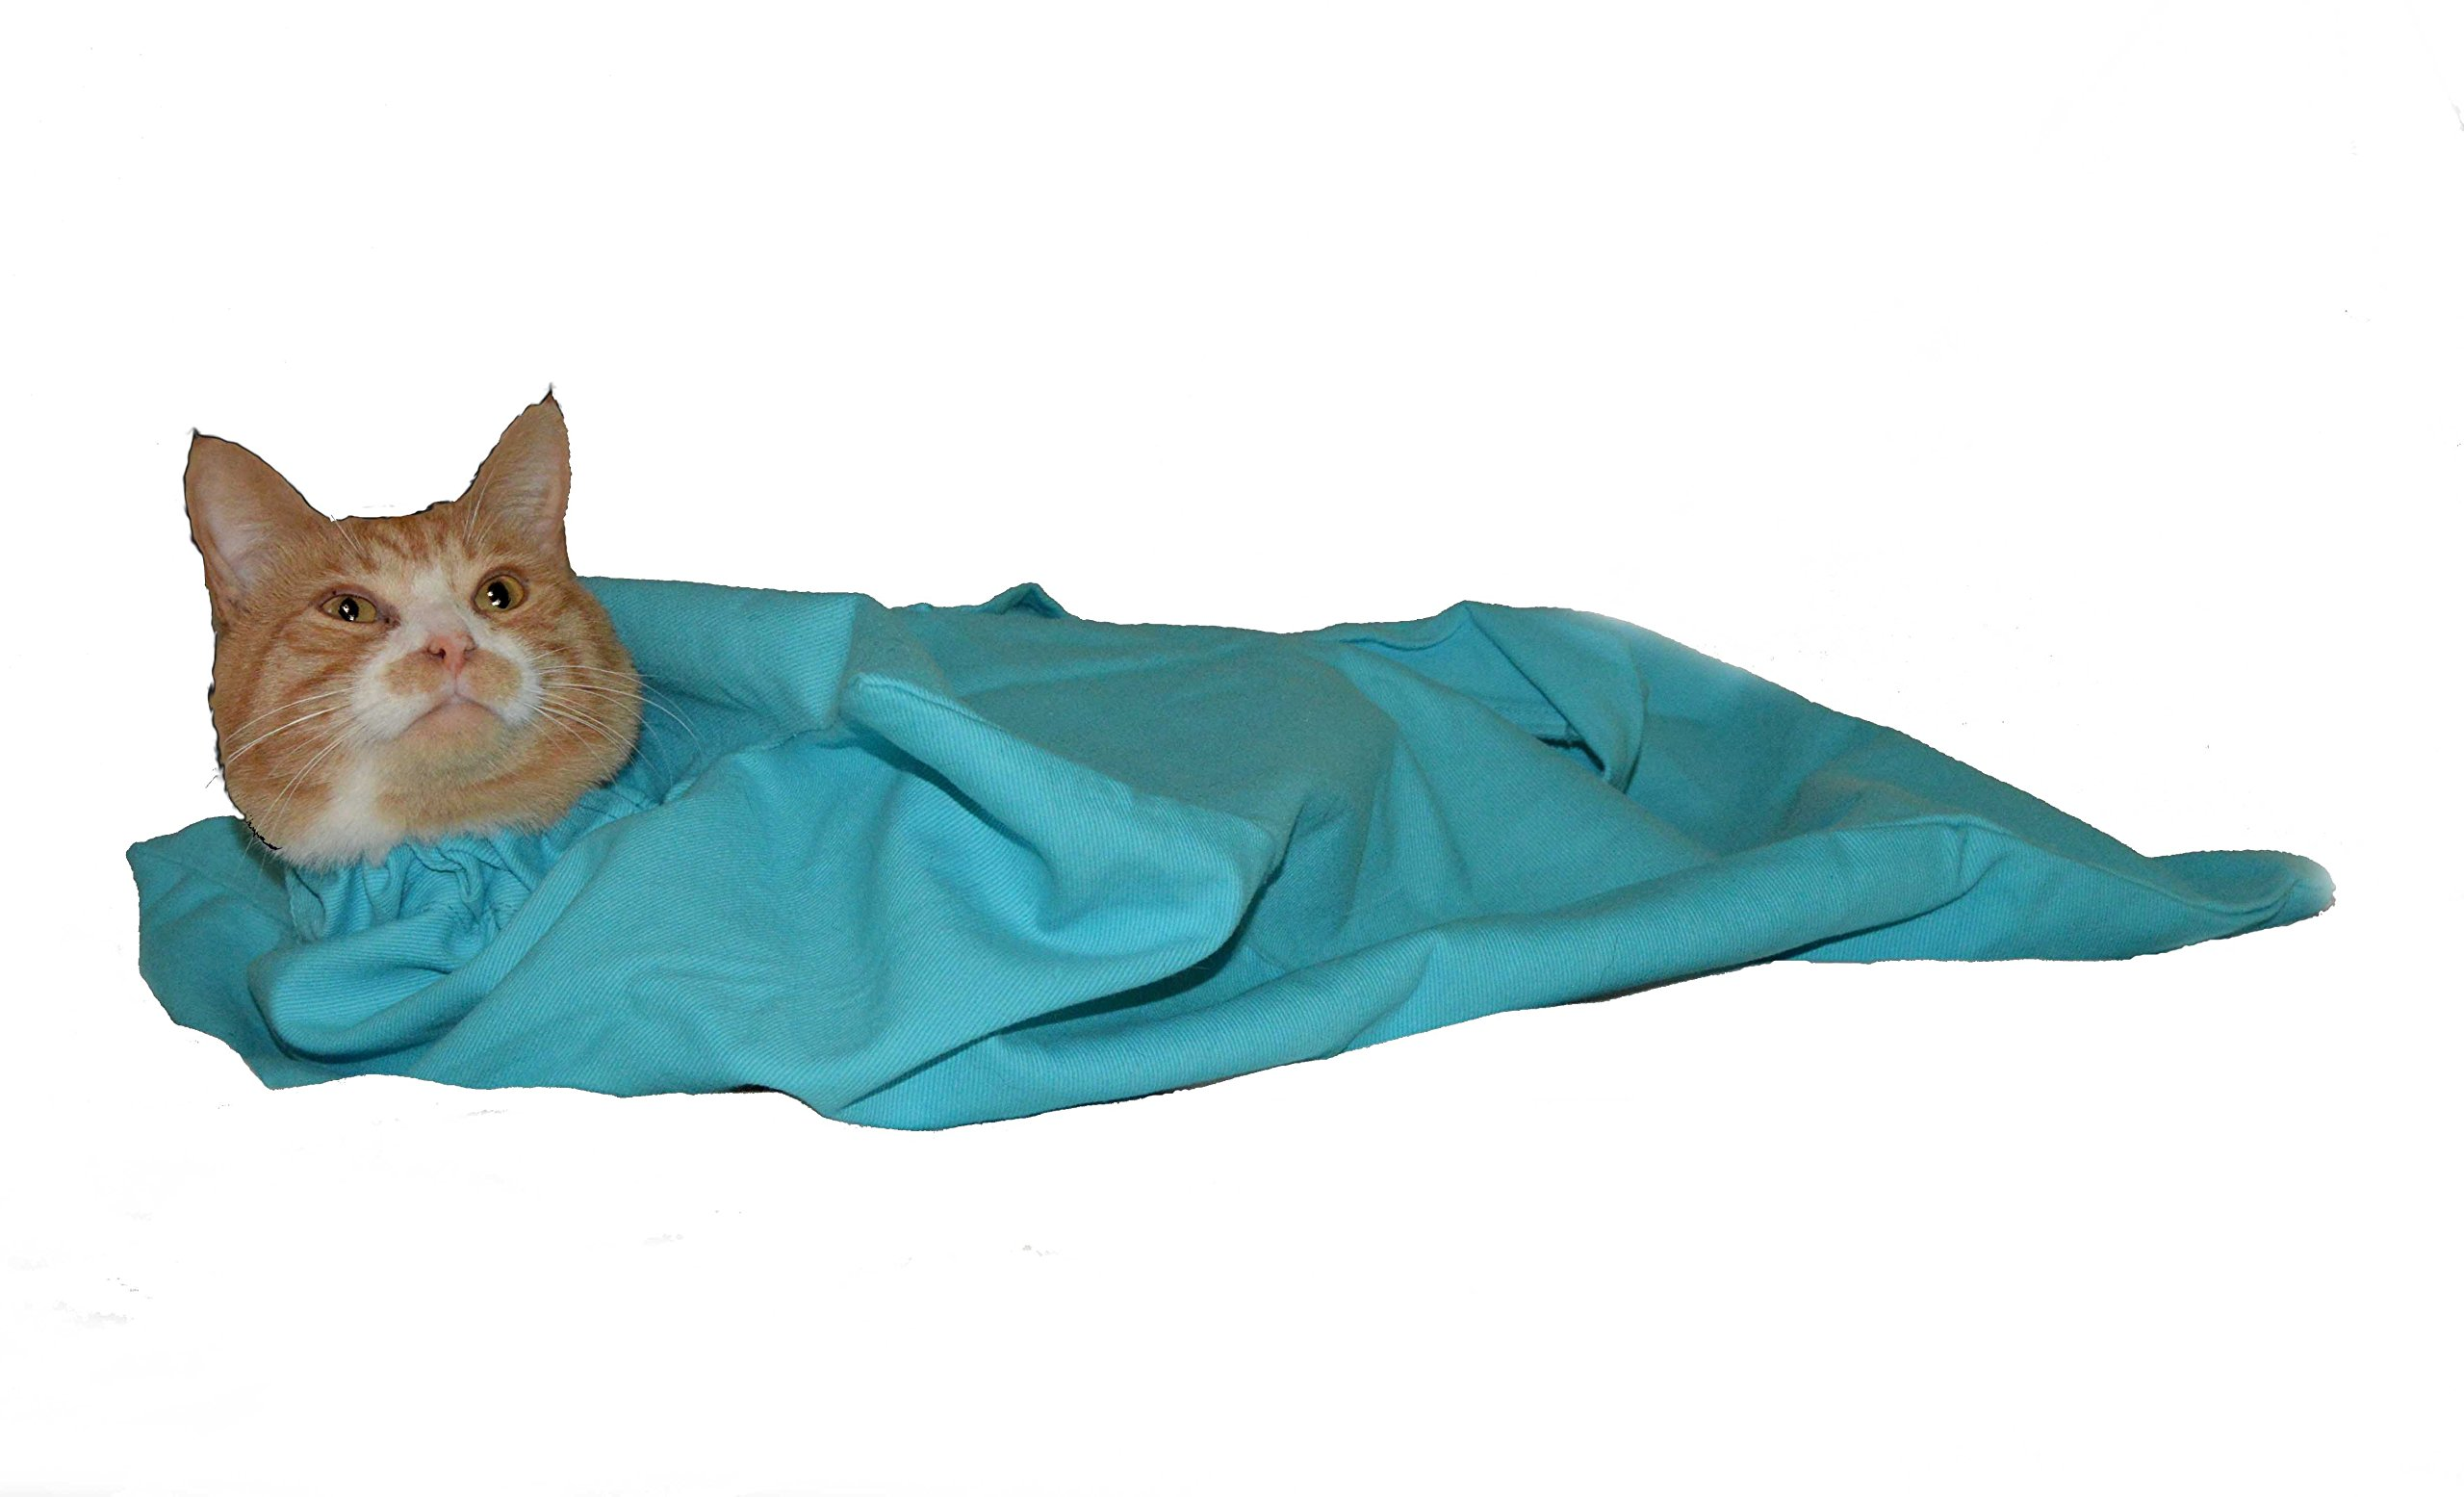 Cat-in-the-bag Large Light Blue Cozy Comfort Carrier- Cat Carrier and Grooming Bag for Vet Visits, Medication Administration, Dental Care, and Car Travel by Cat-in-the-bag (Image #1)